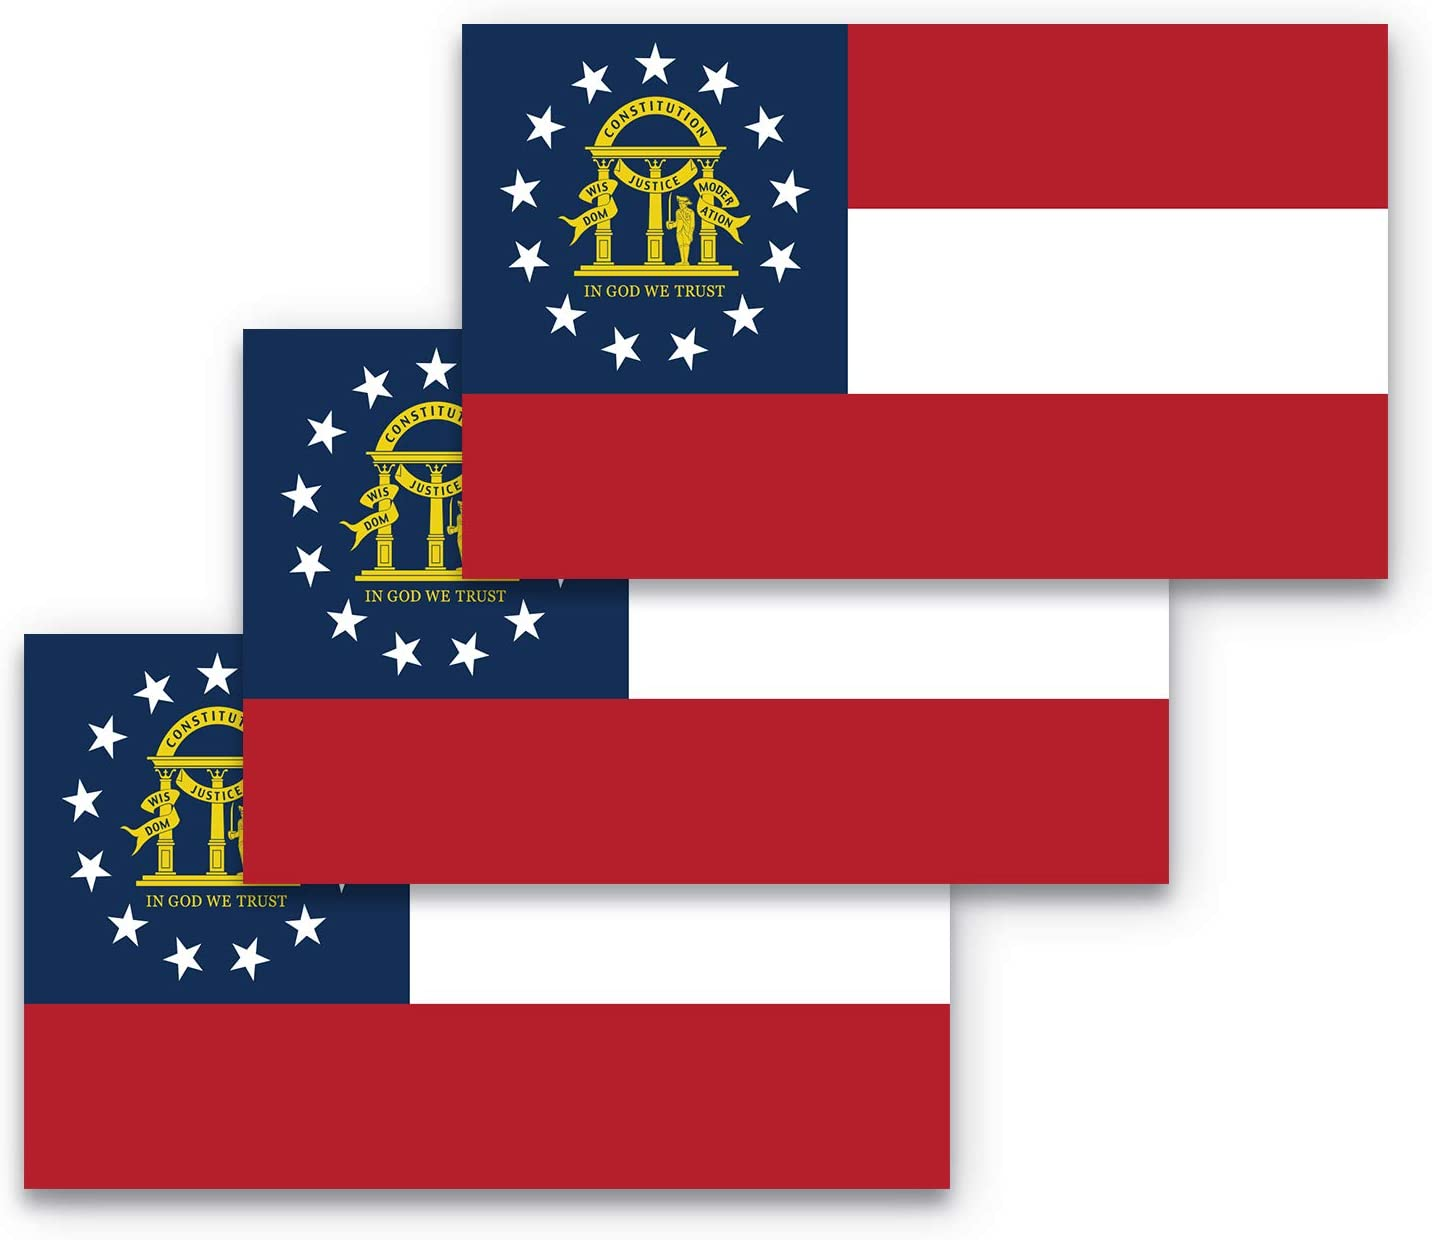 3x5 Georgia Flag Bumper Sticker 3-Pack Made with Durable, Waterproof Materials, Flag of Georgia Bumper Sticker, State Flag of Georgia Bumper Sticker, Georgia State Flag Bumper Sticker